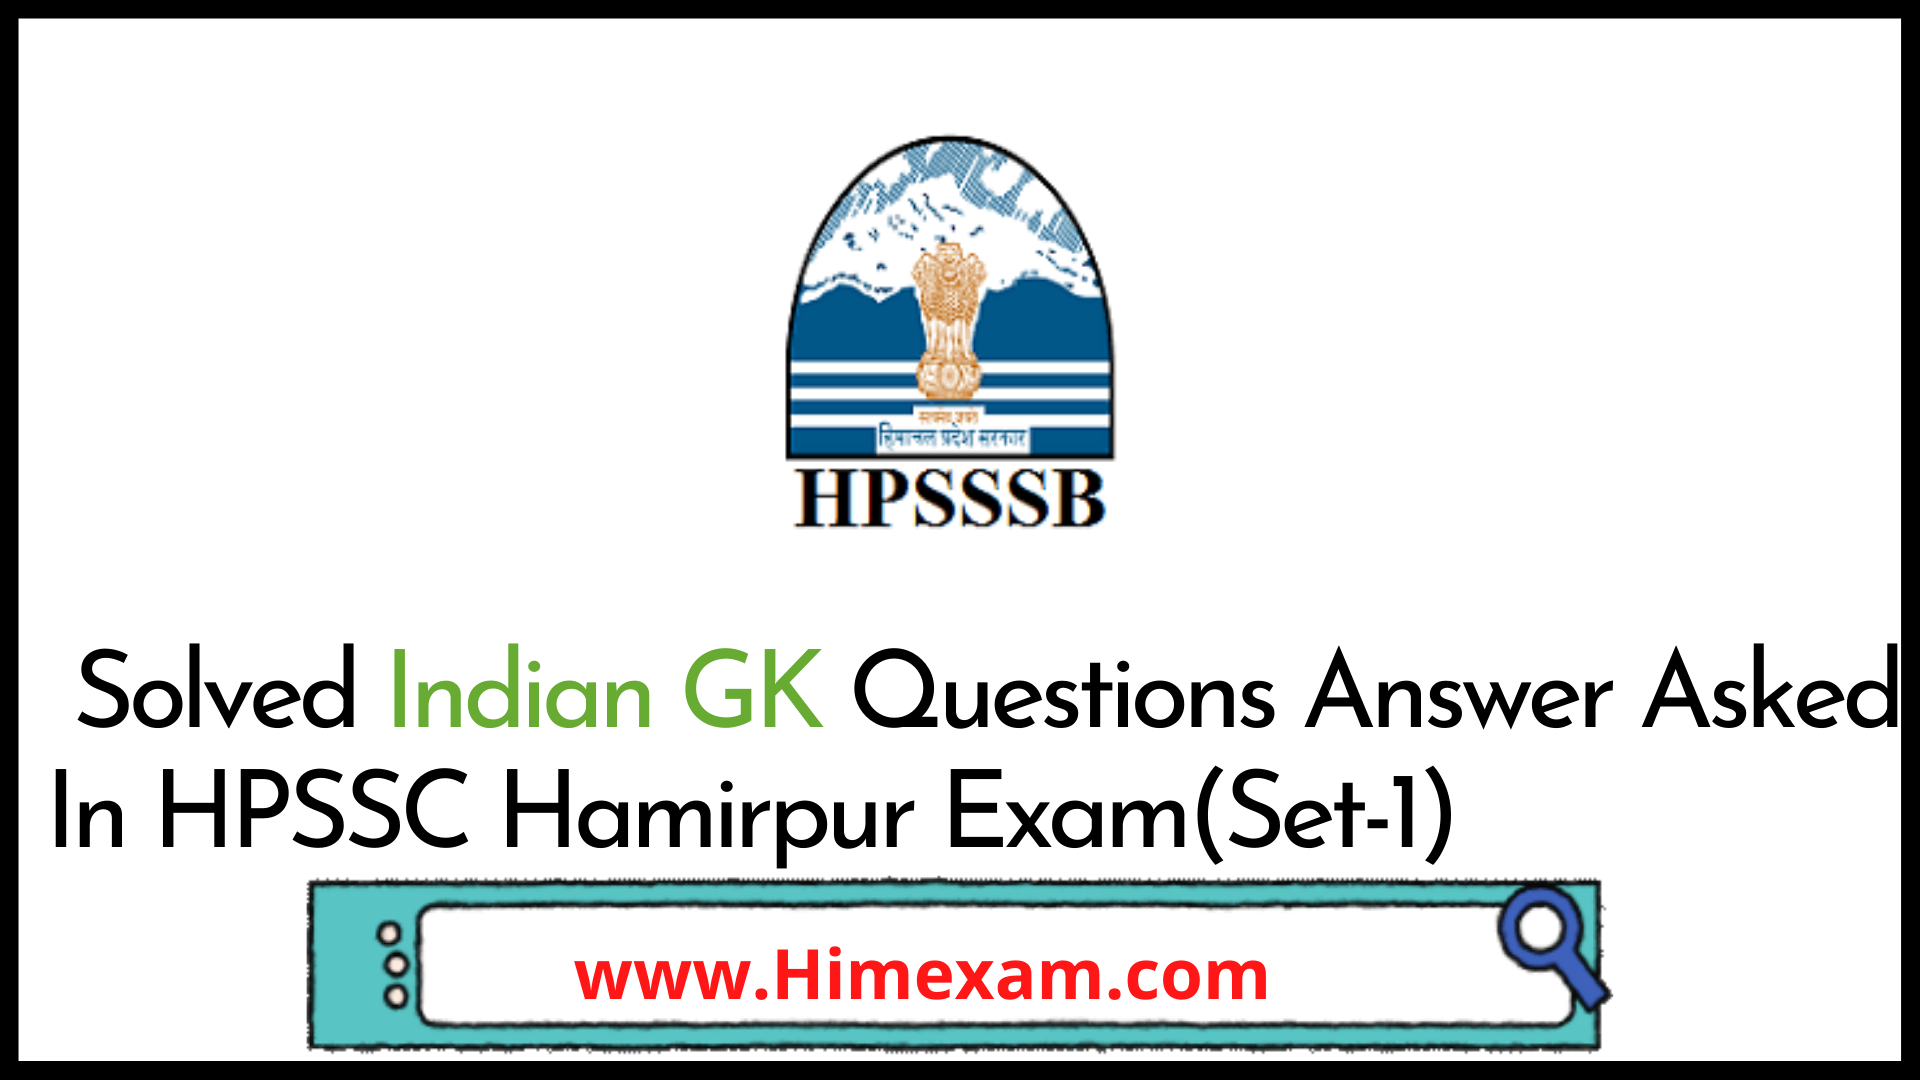 Solved Indian GK Questions Answer Asked In HPSSC Hamirpur Exam(Set-1)